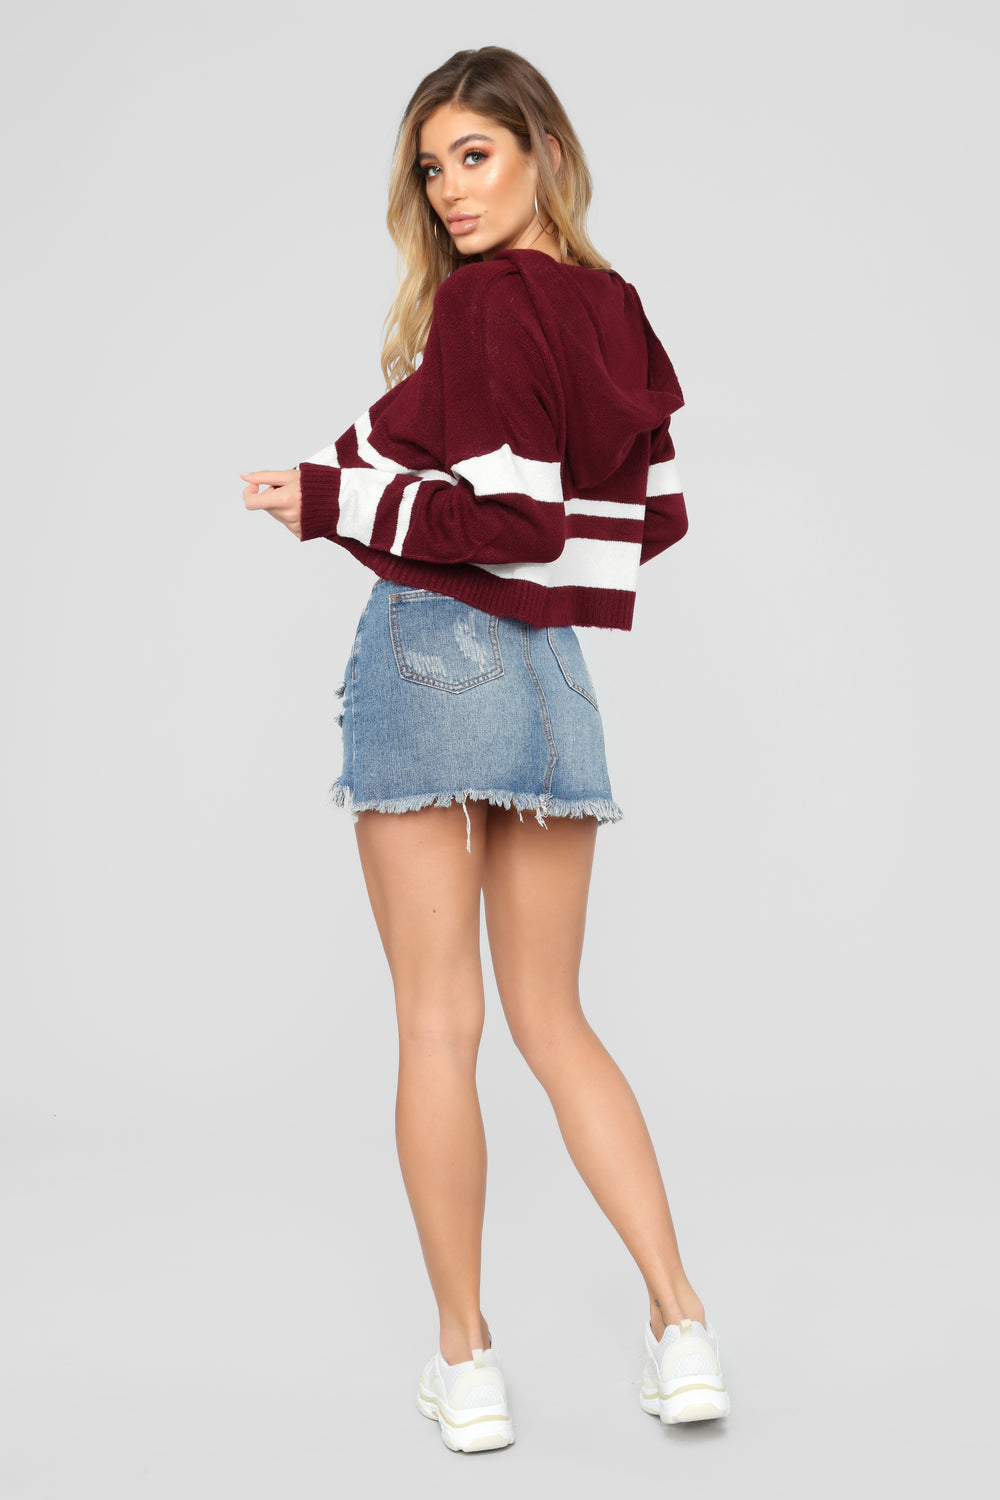 Can't Stop Won't Stop Hooded Sweater - Burgundy/Combo